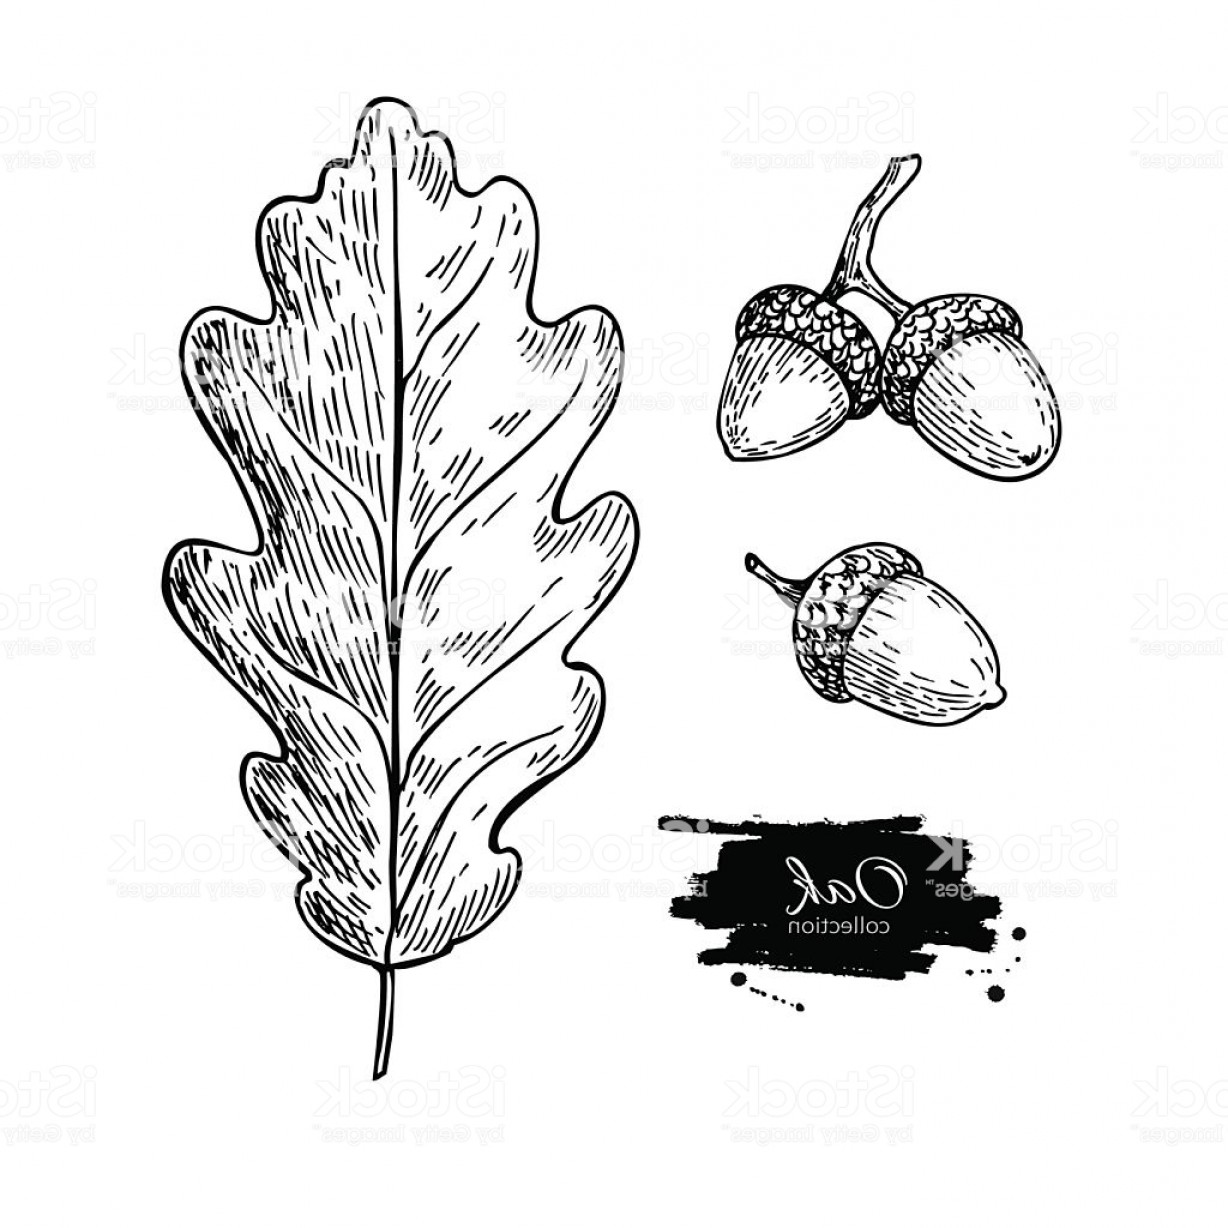 how to draw an oak leaf heraldry oak leaf heraldic free photo simple hand drawn oak how to draw leaf an